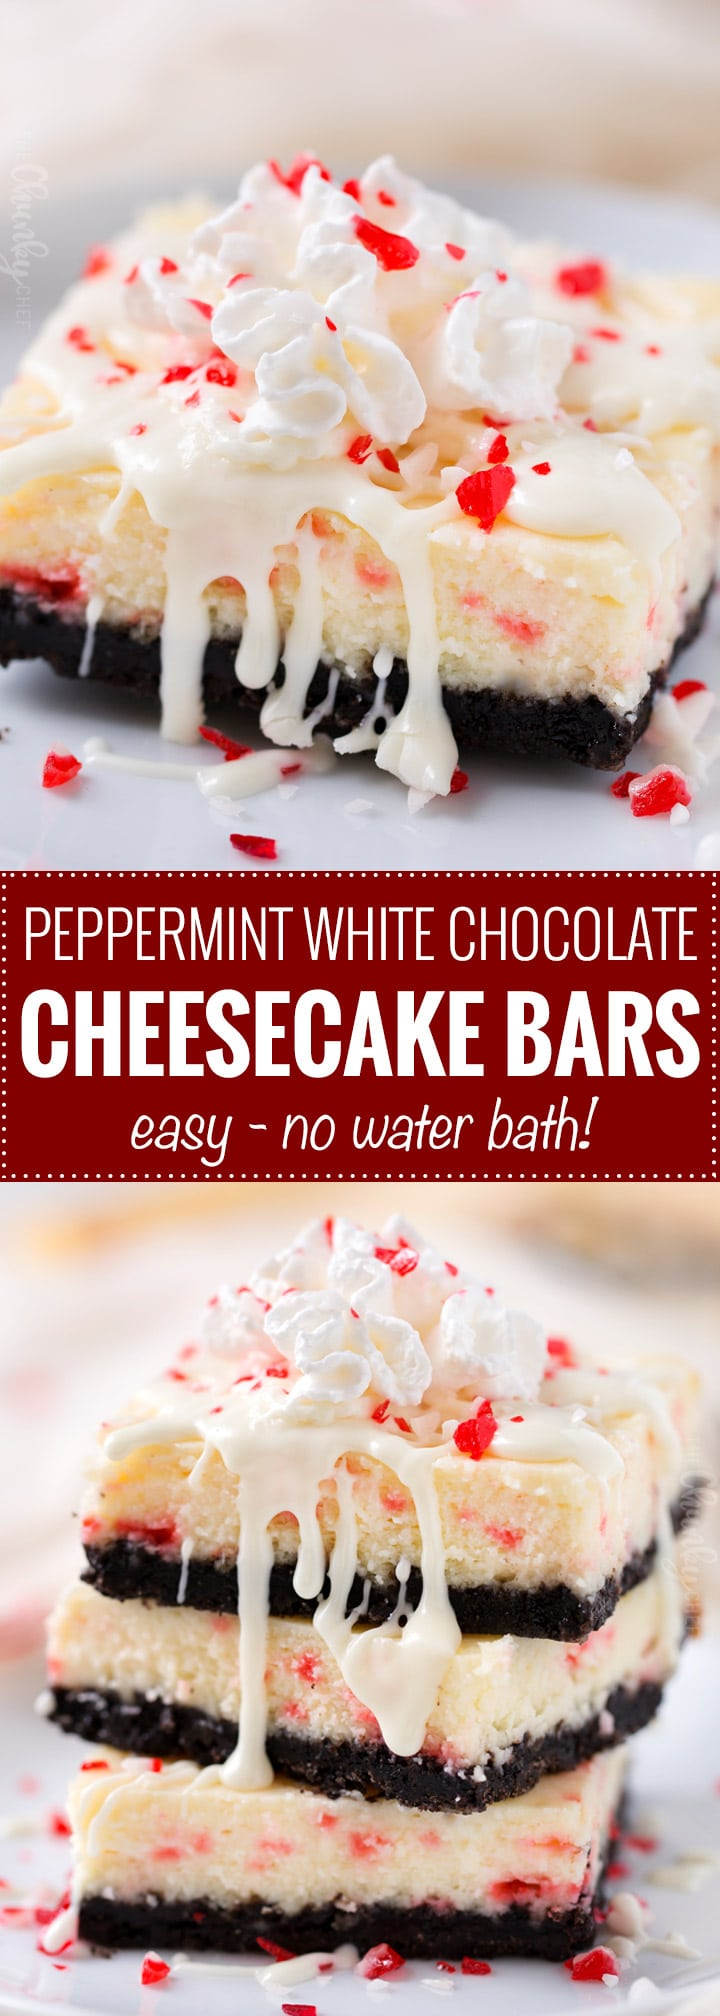 Peppermint White Chocolate Cheesecake Bars | An Oreo cookie crust, velvety smooth white chocolate peppermint cheesecake filling, candy cane pieces, and an extra drizzle of creamy white chocolate.  Holiday baking at it's finest! | The Chunky Chef | #cheesecakerecipes #cheesecakebars #peppermint #whitechocolate #holidaybaking #Christmasdesserts